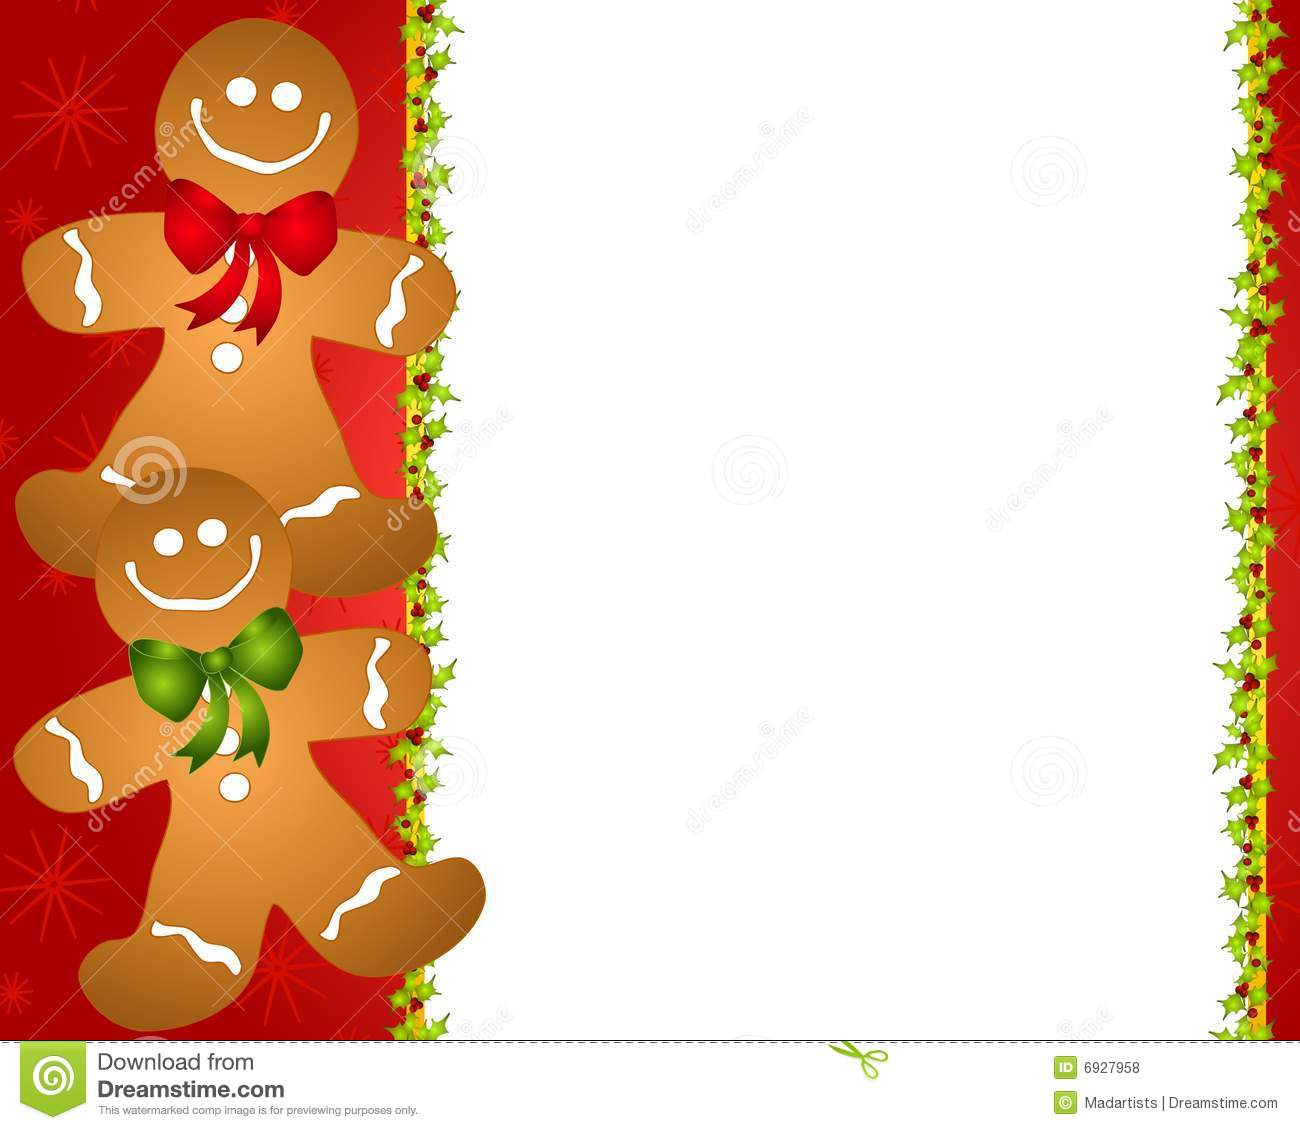 Gingerbread man border clipart free vector royalty free Free Gingerbread Border Cliparts, Download Free Clip Art, Free Clip ... vector royalty free